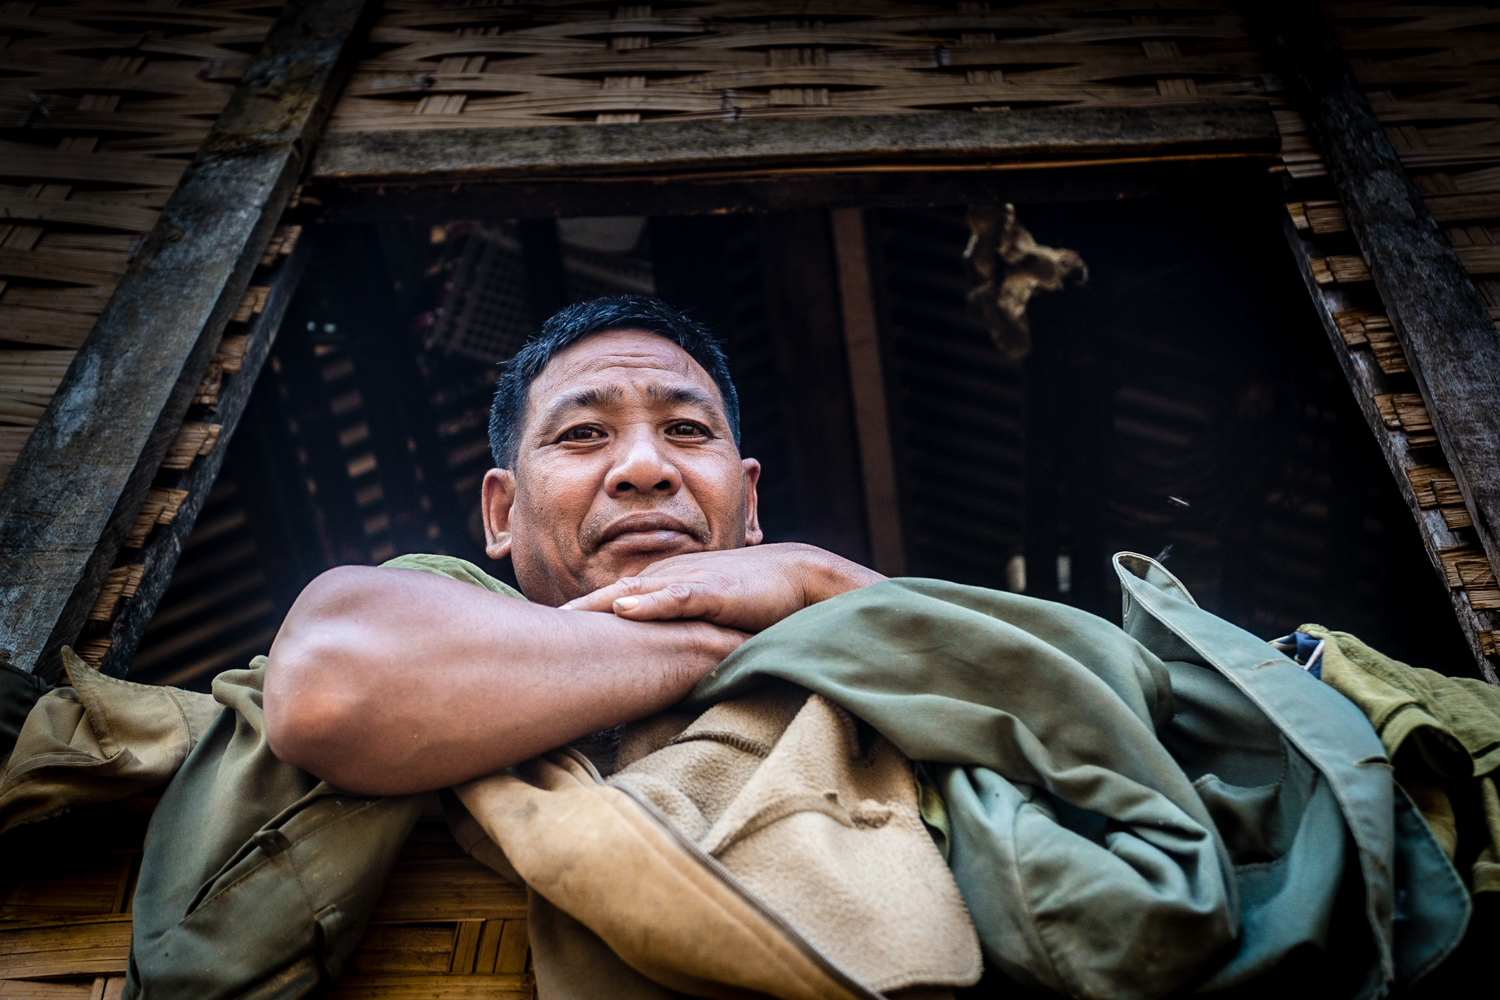 Villager inside his abode in the outskirts of Muang Ngoy.